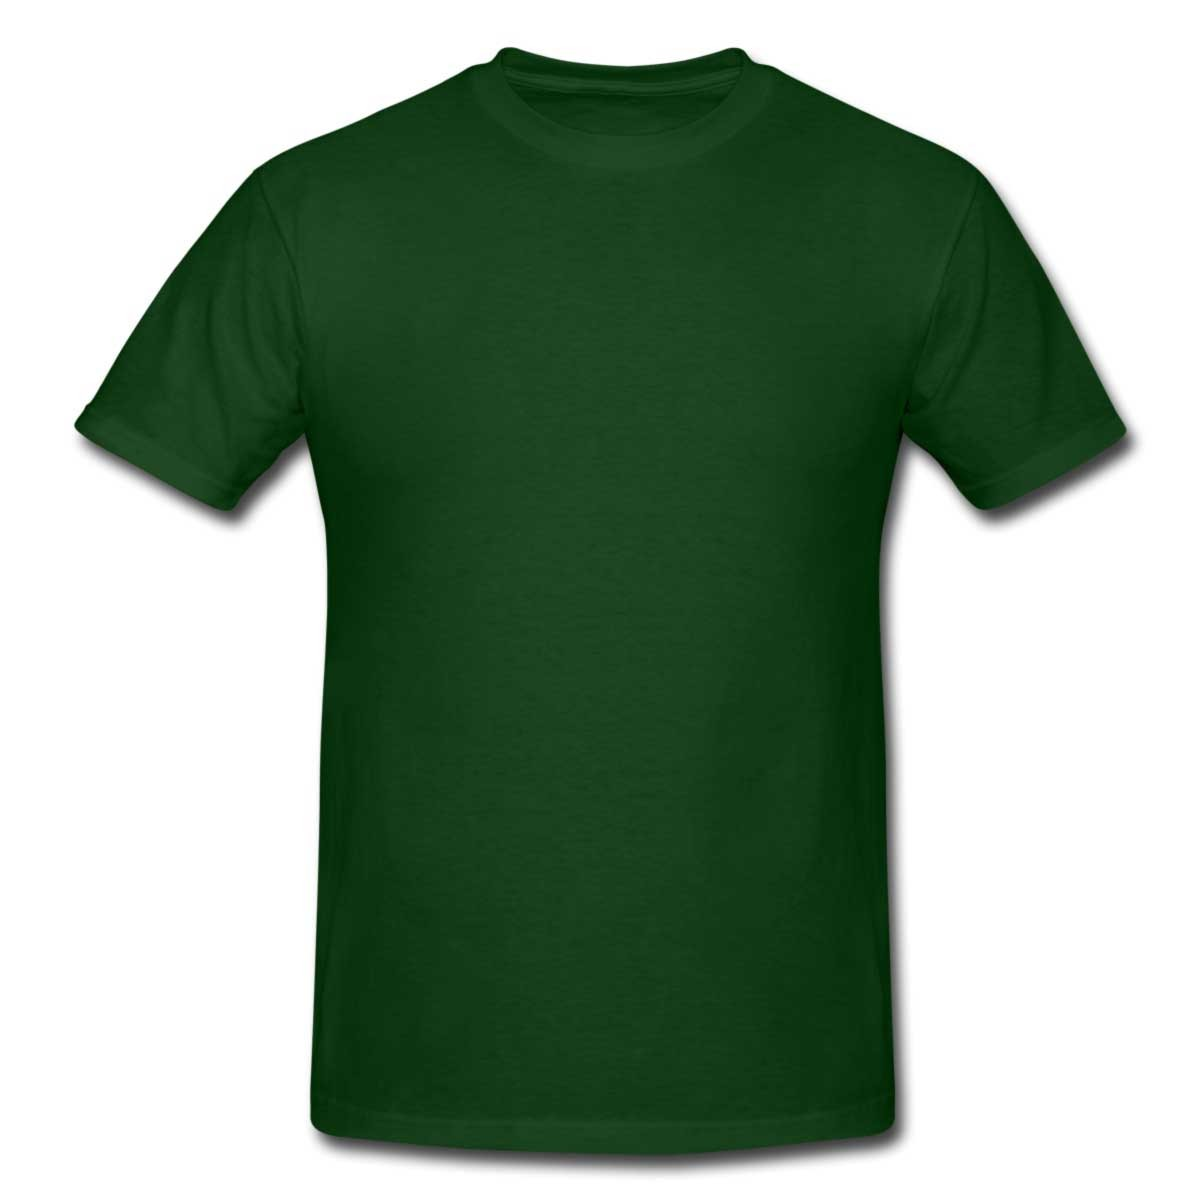 Plain t shirt designs clipart best for T shirts with designs on them